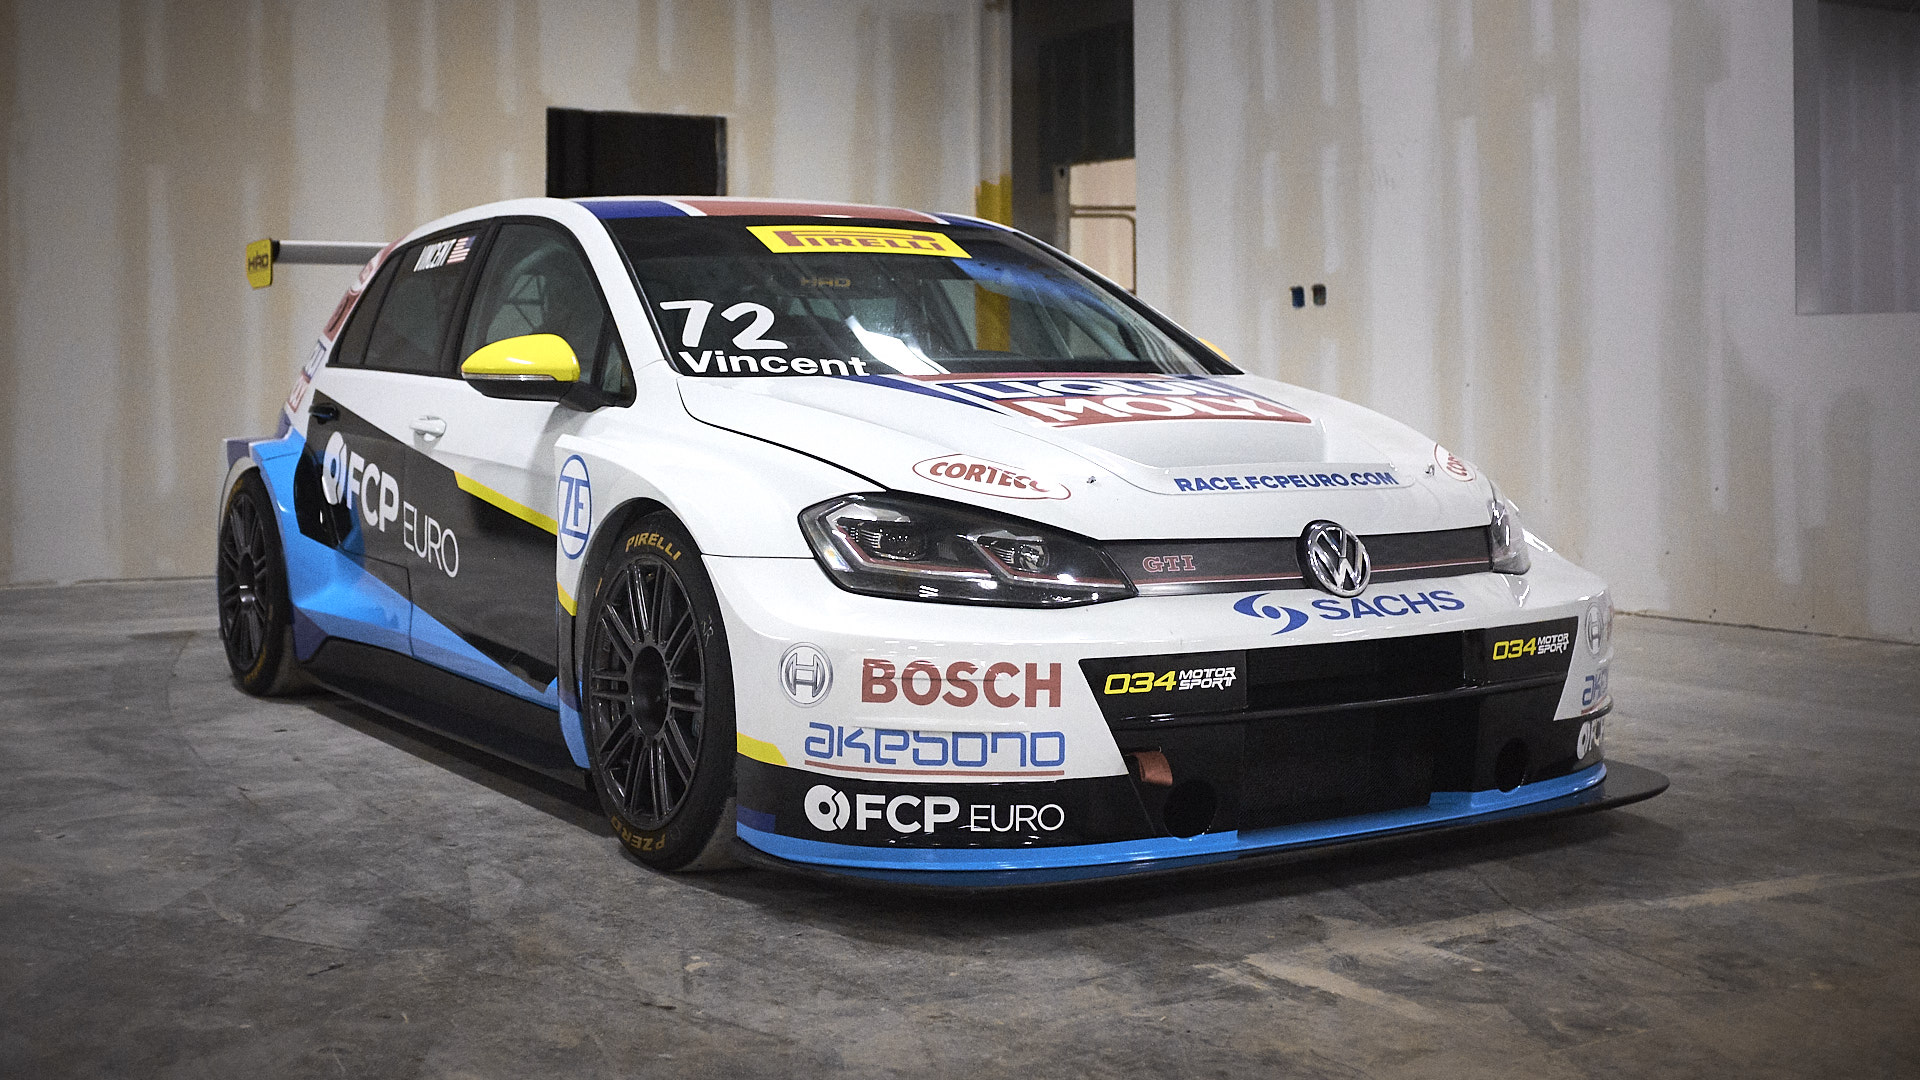 FCP Euro Continues Partnership With 034Motorsport For The 2019 TC America Championship